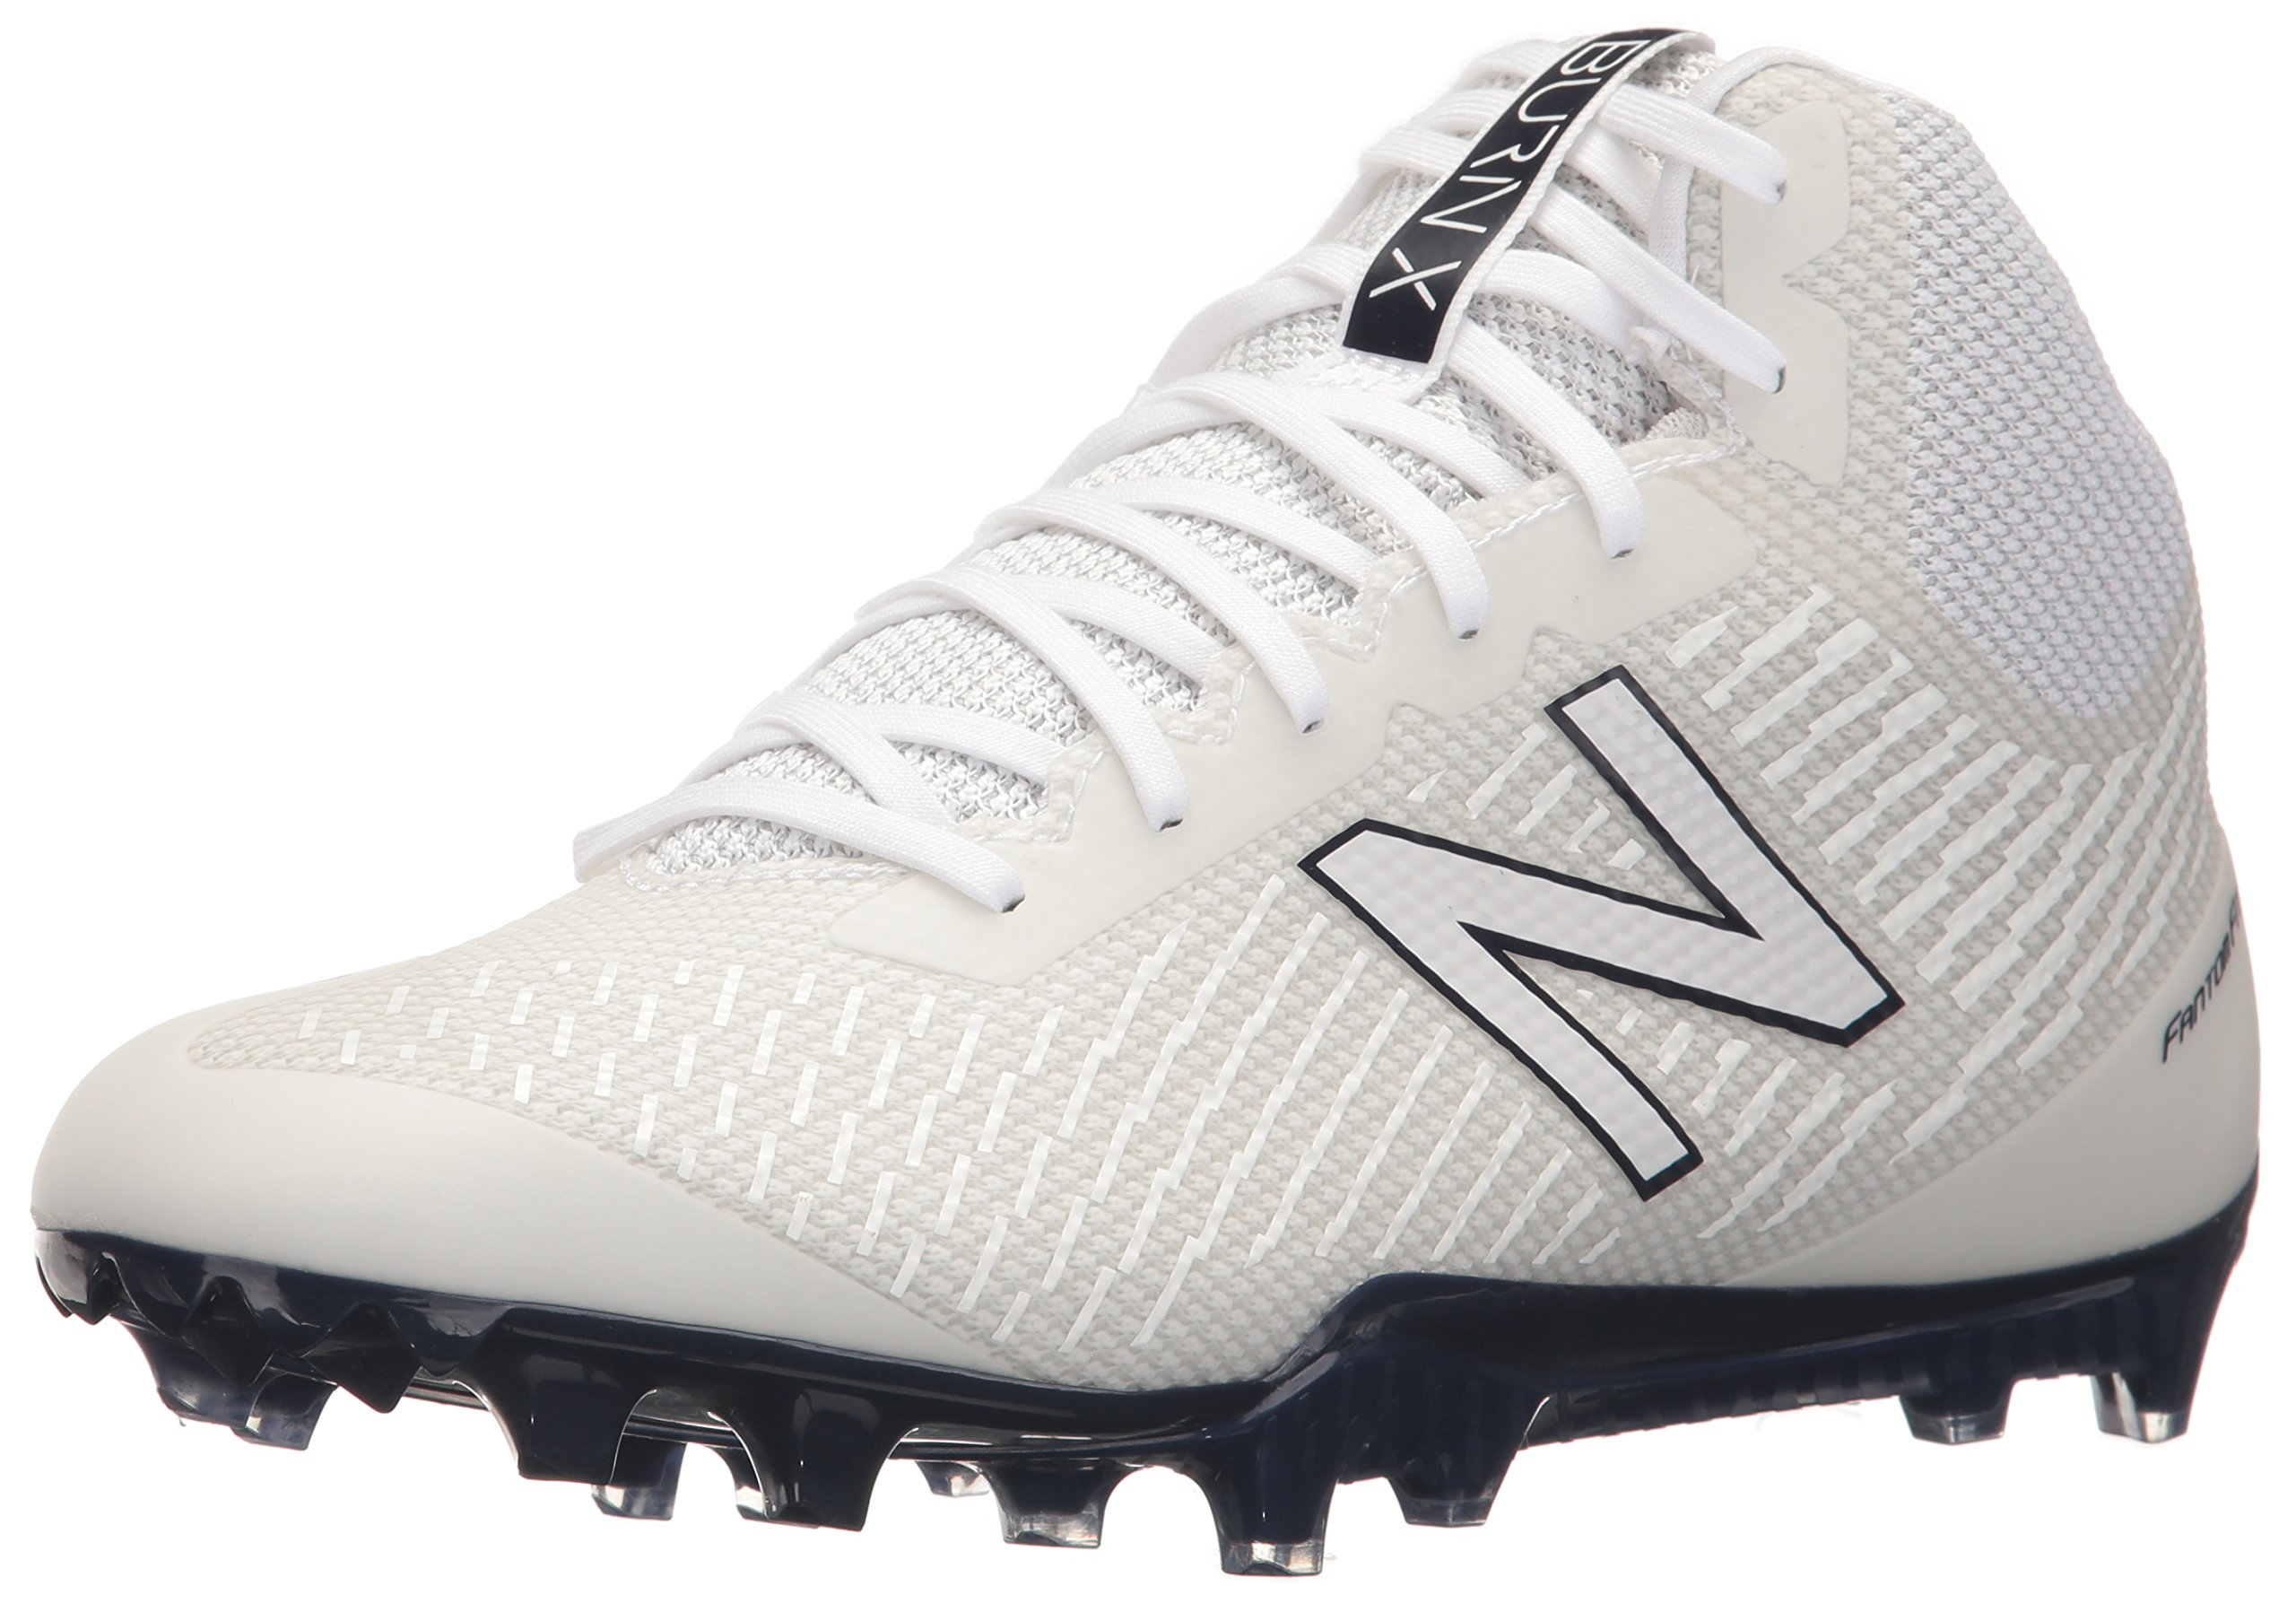 New Balance Men's Burn Mid Speed Lacrosse Shoe, White/Blue, 6.5 2E US by New Balance